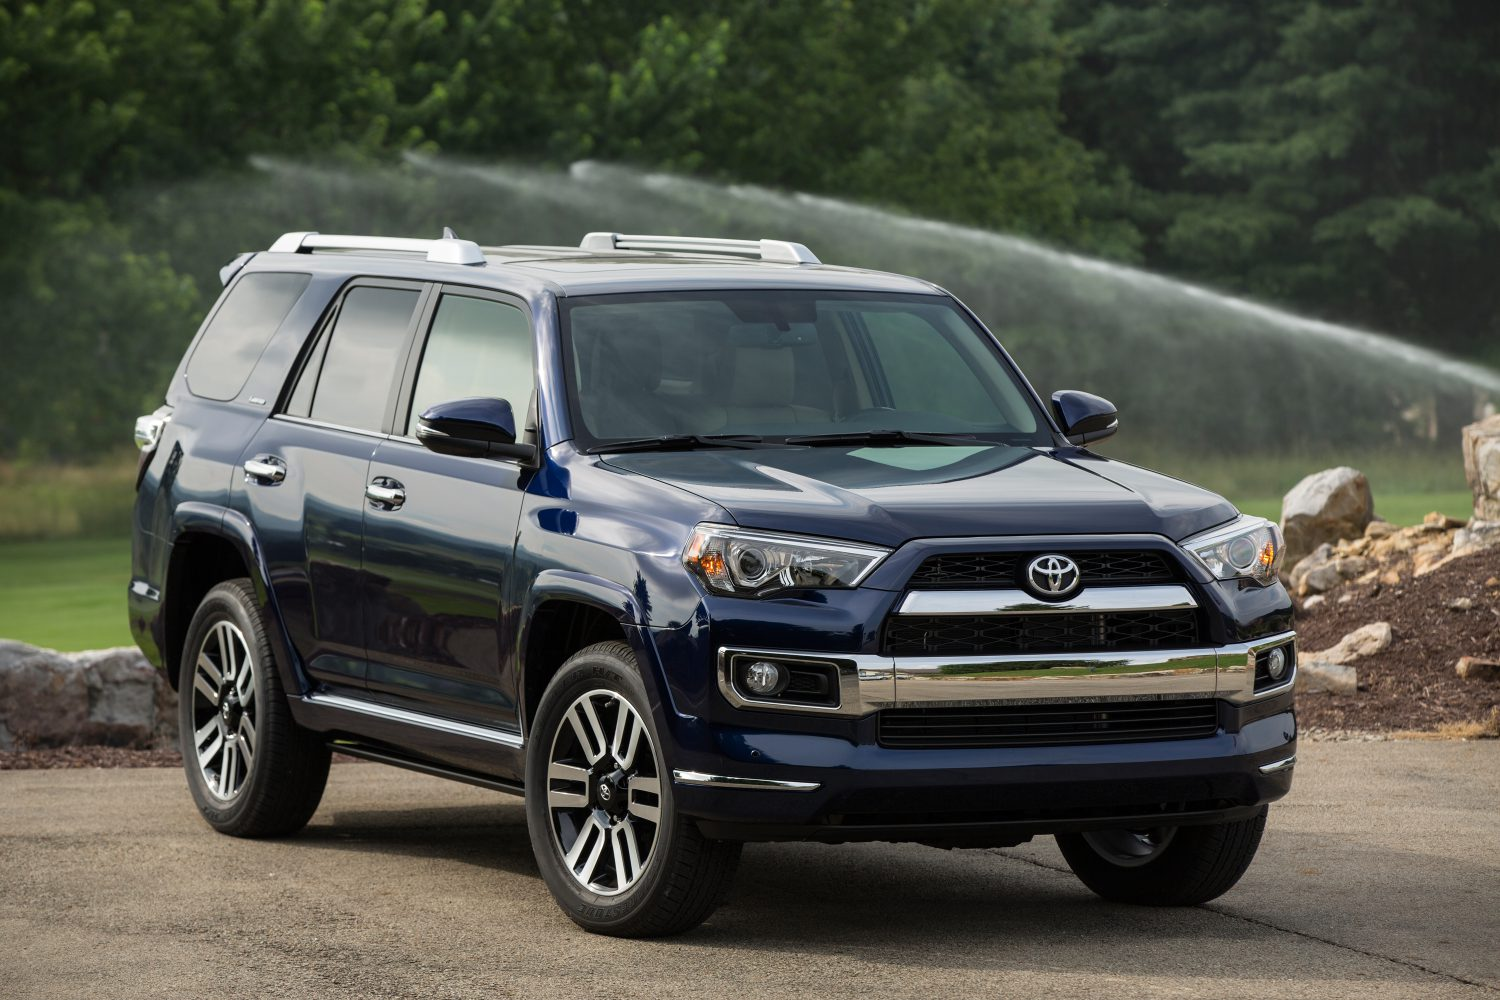 17 2017 Toyota 4Runner owners manual